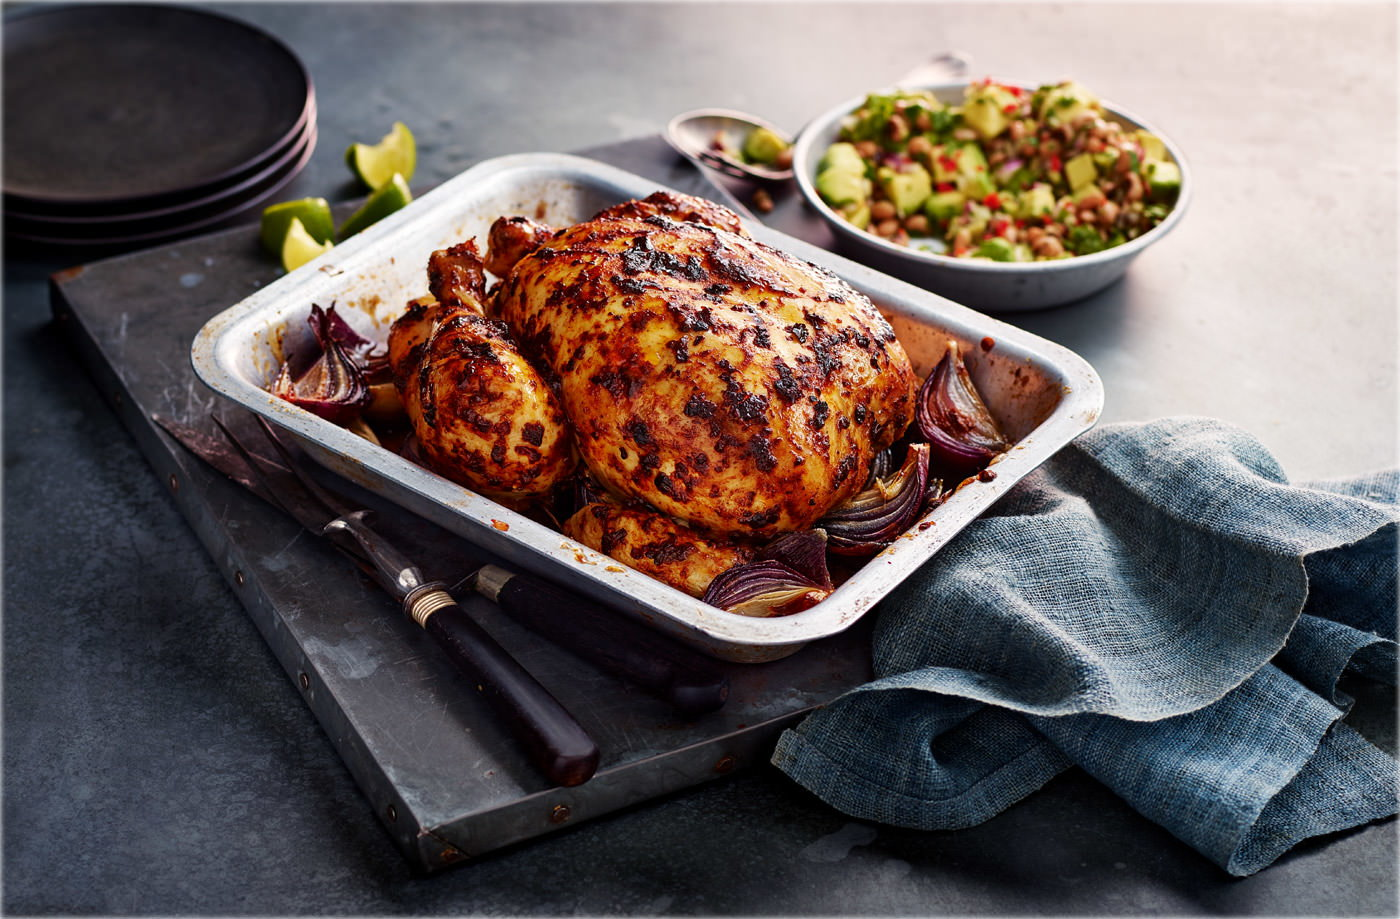 David S Mexican Roast Chicken Recipe Tesco Real Food